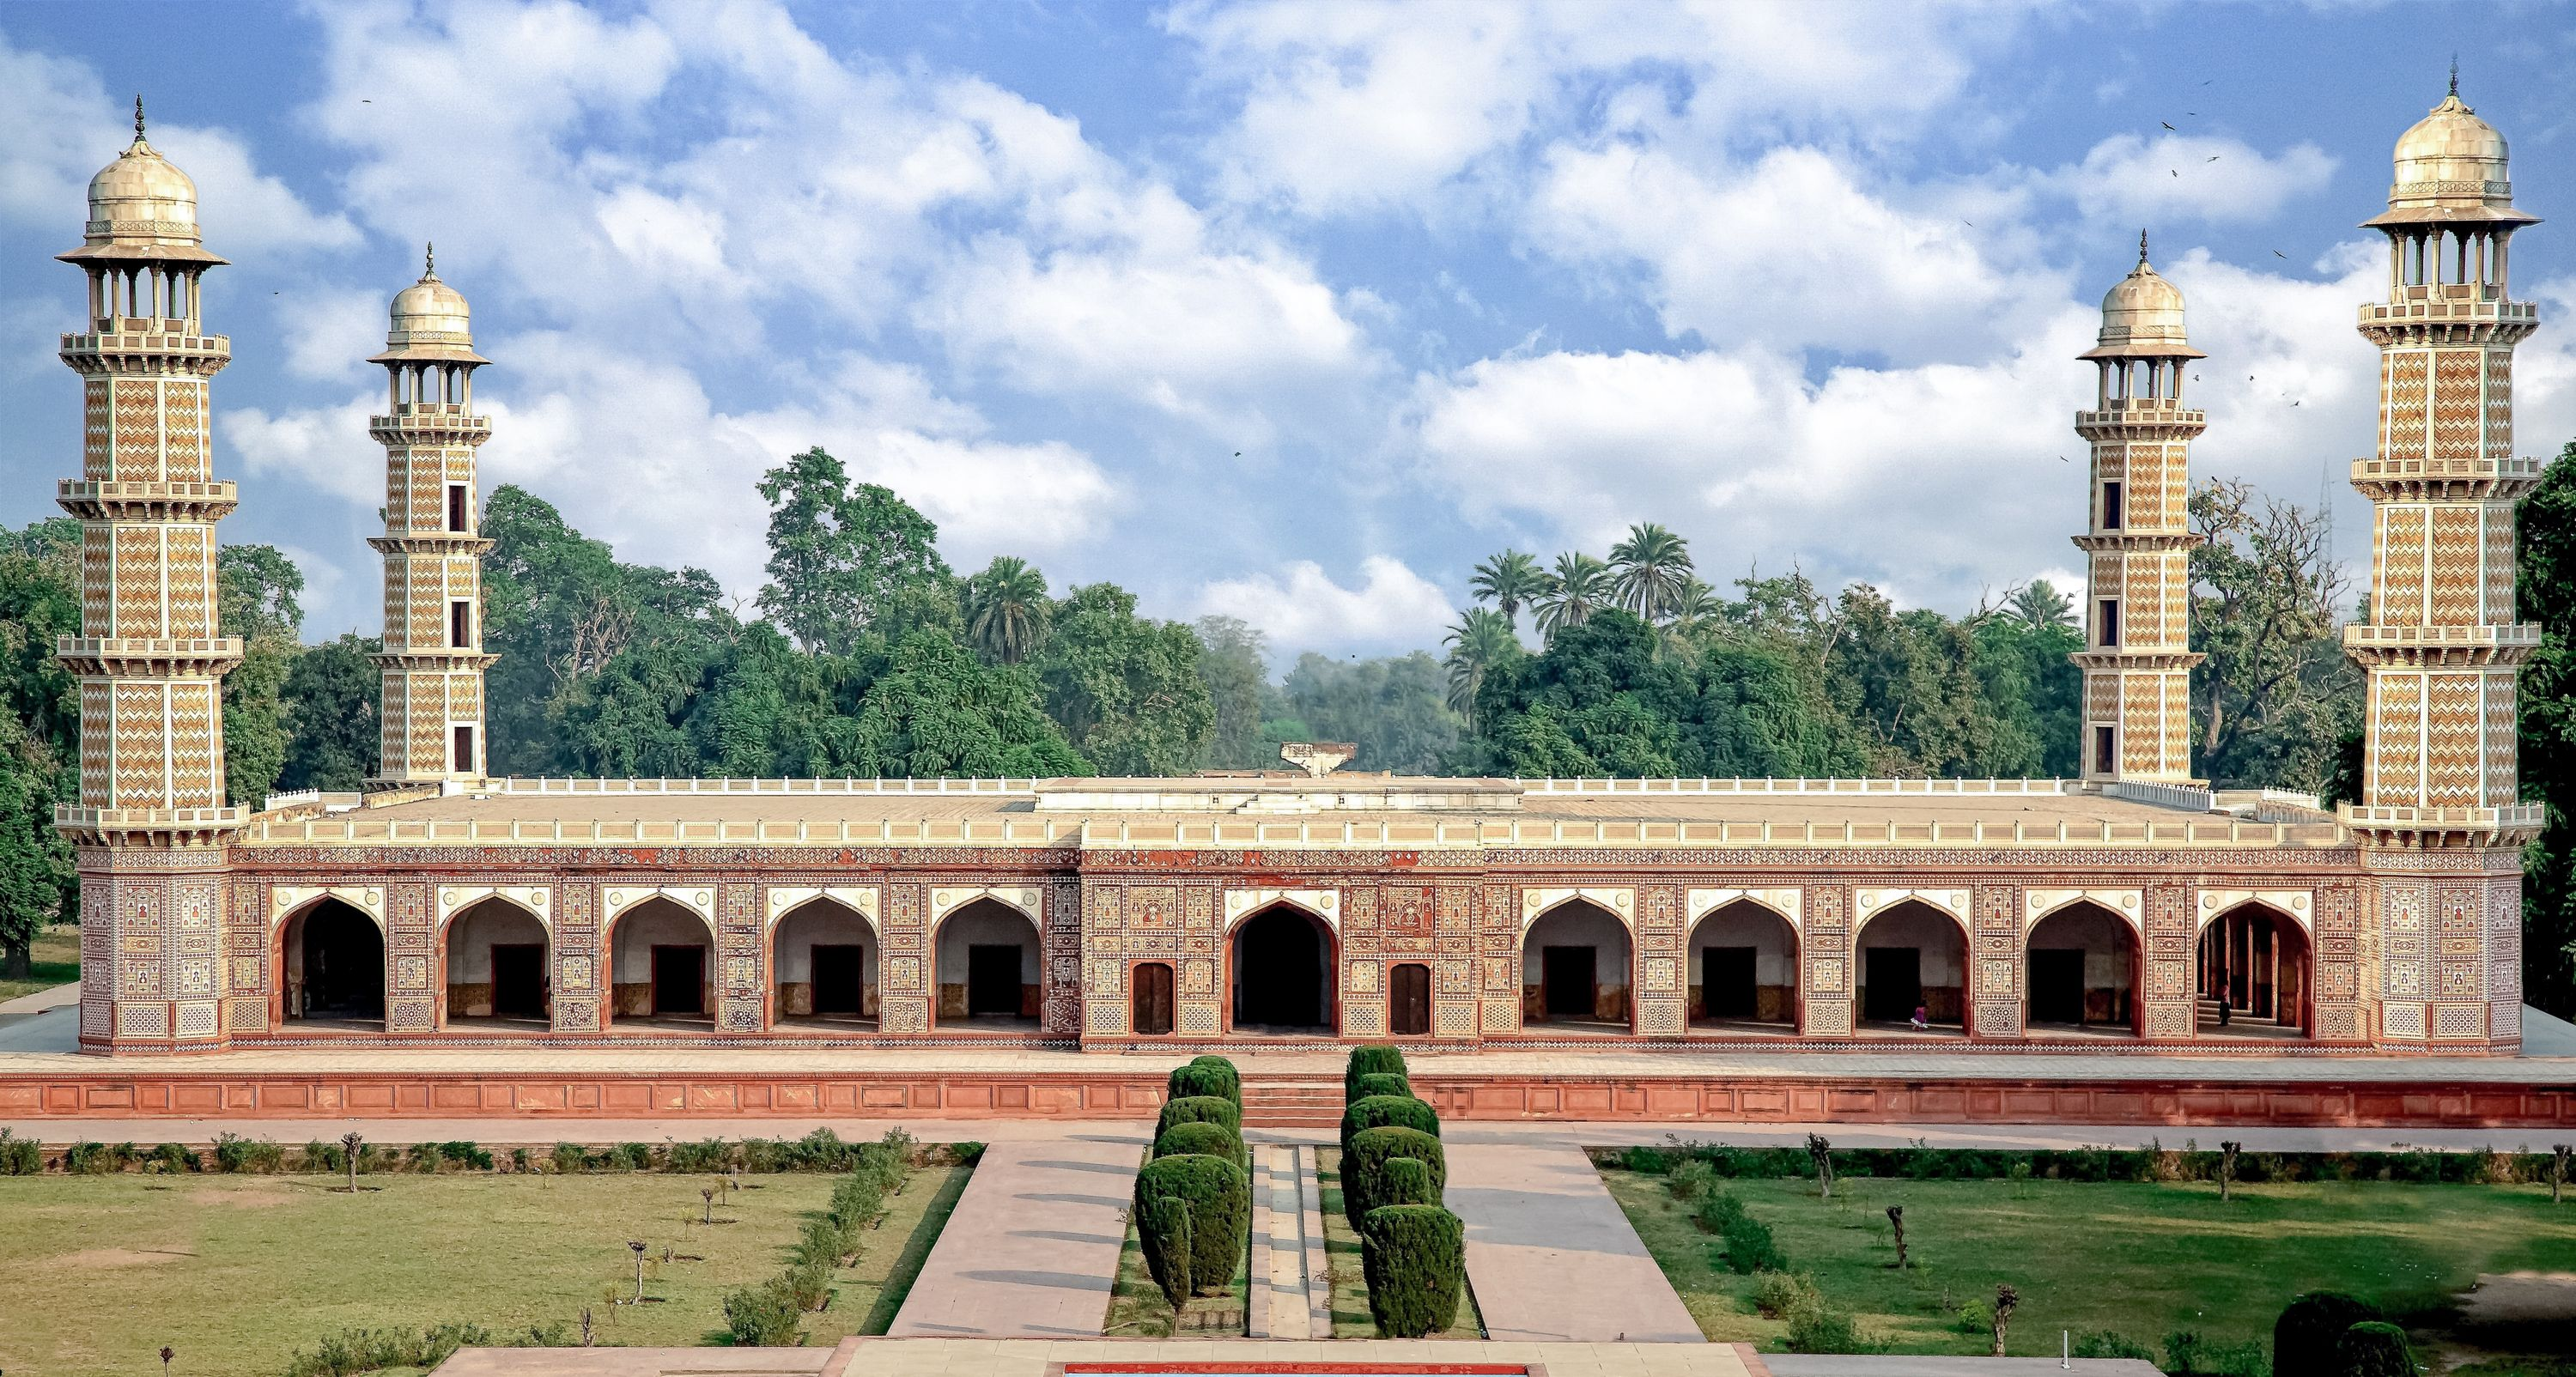 Pakistan, possibly designed by Nurjehan (1577–1645, born Afghanistan), Shahdara, Tomb of Jahangir, 1627–1637, Lahore.